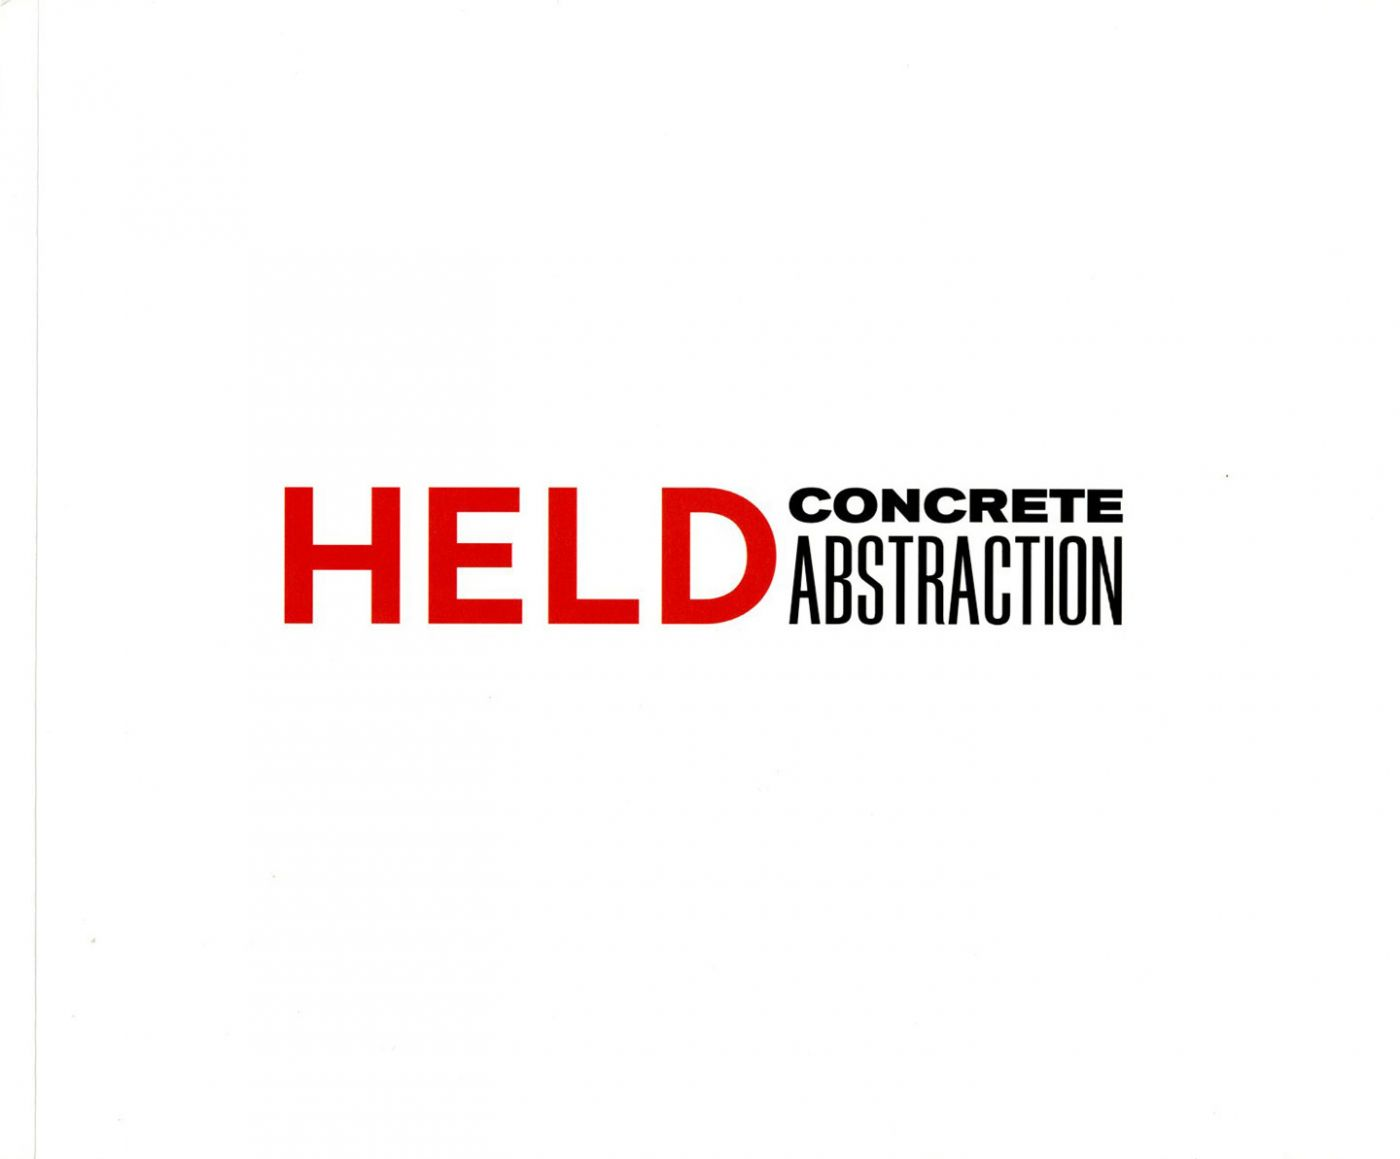 Al Held: Concrete Abstraction